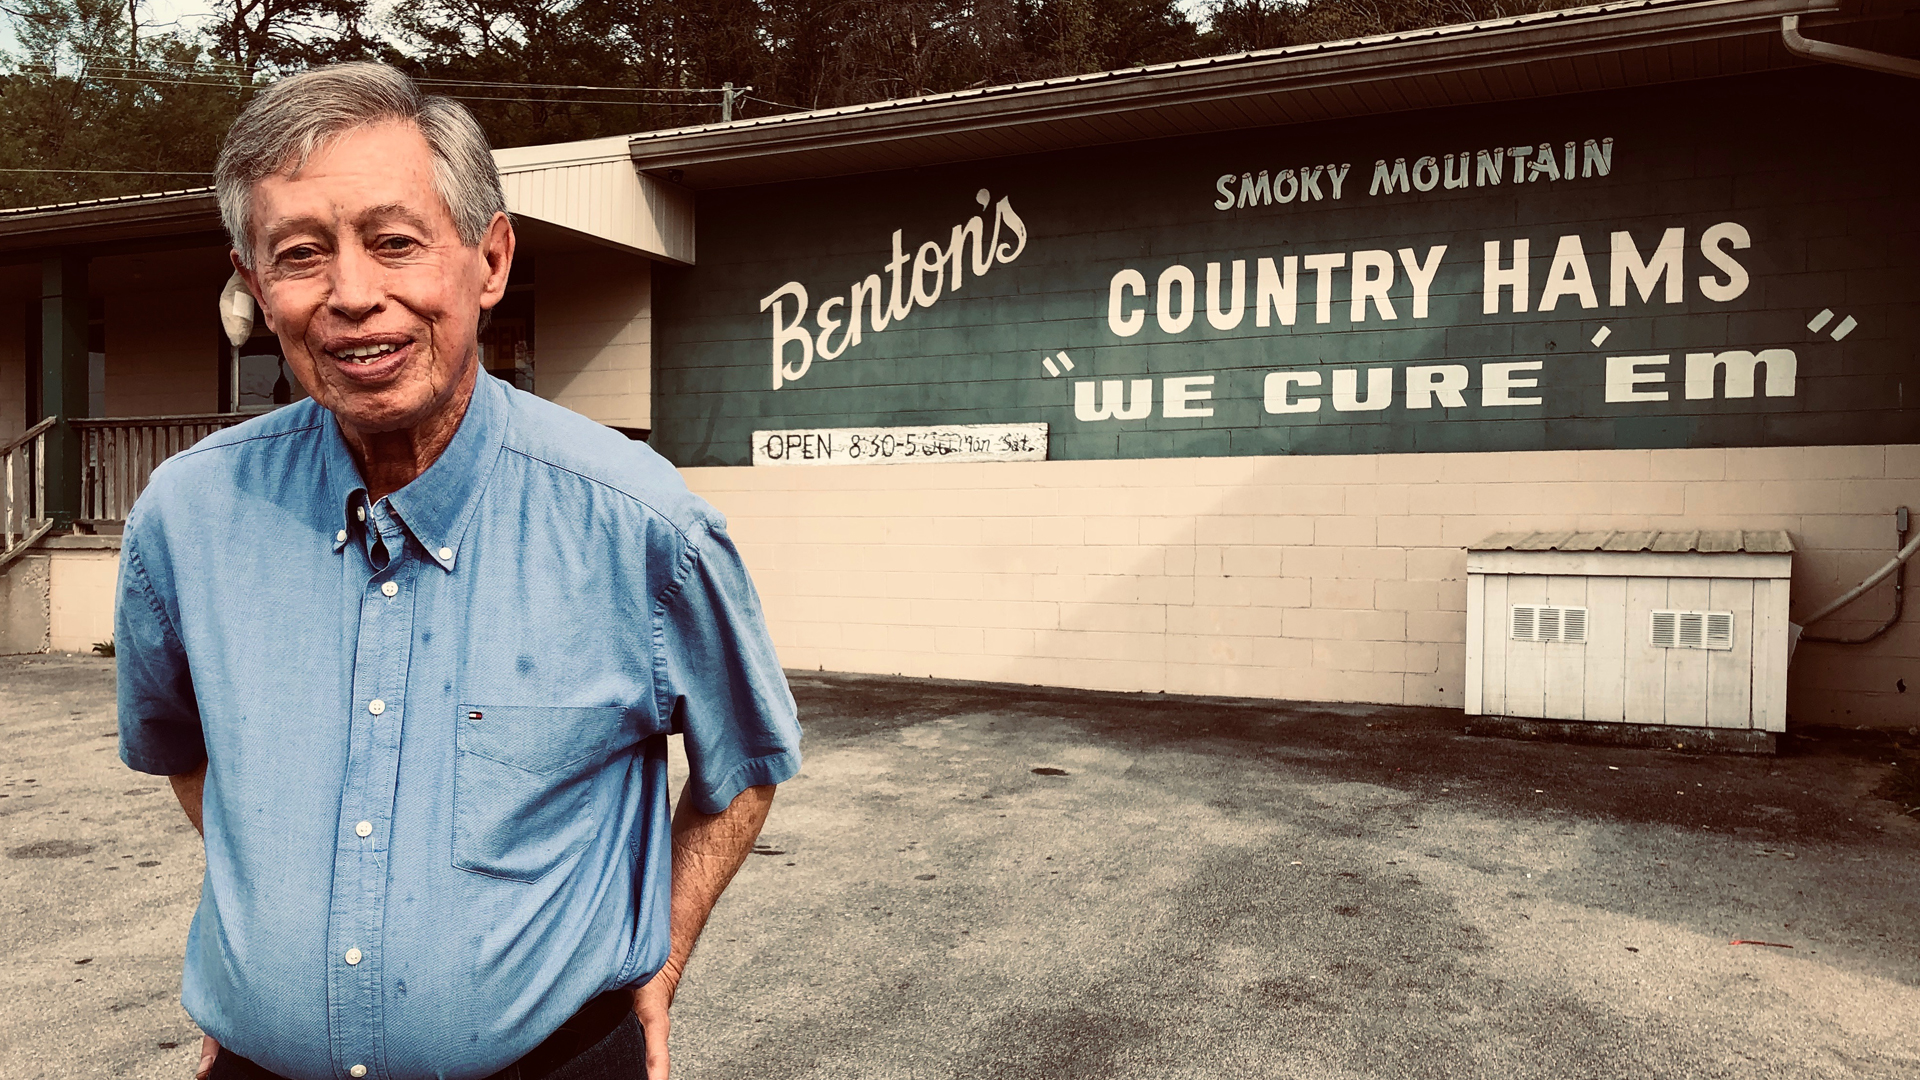 Allan Benton infront of Benton's Smoky Mountain Country Hams